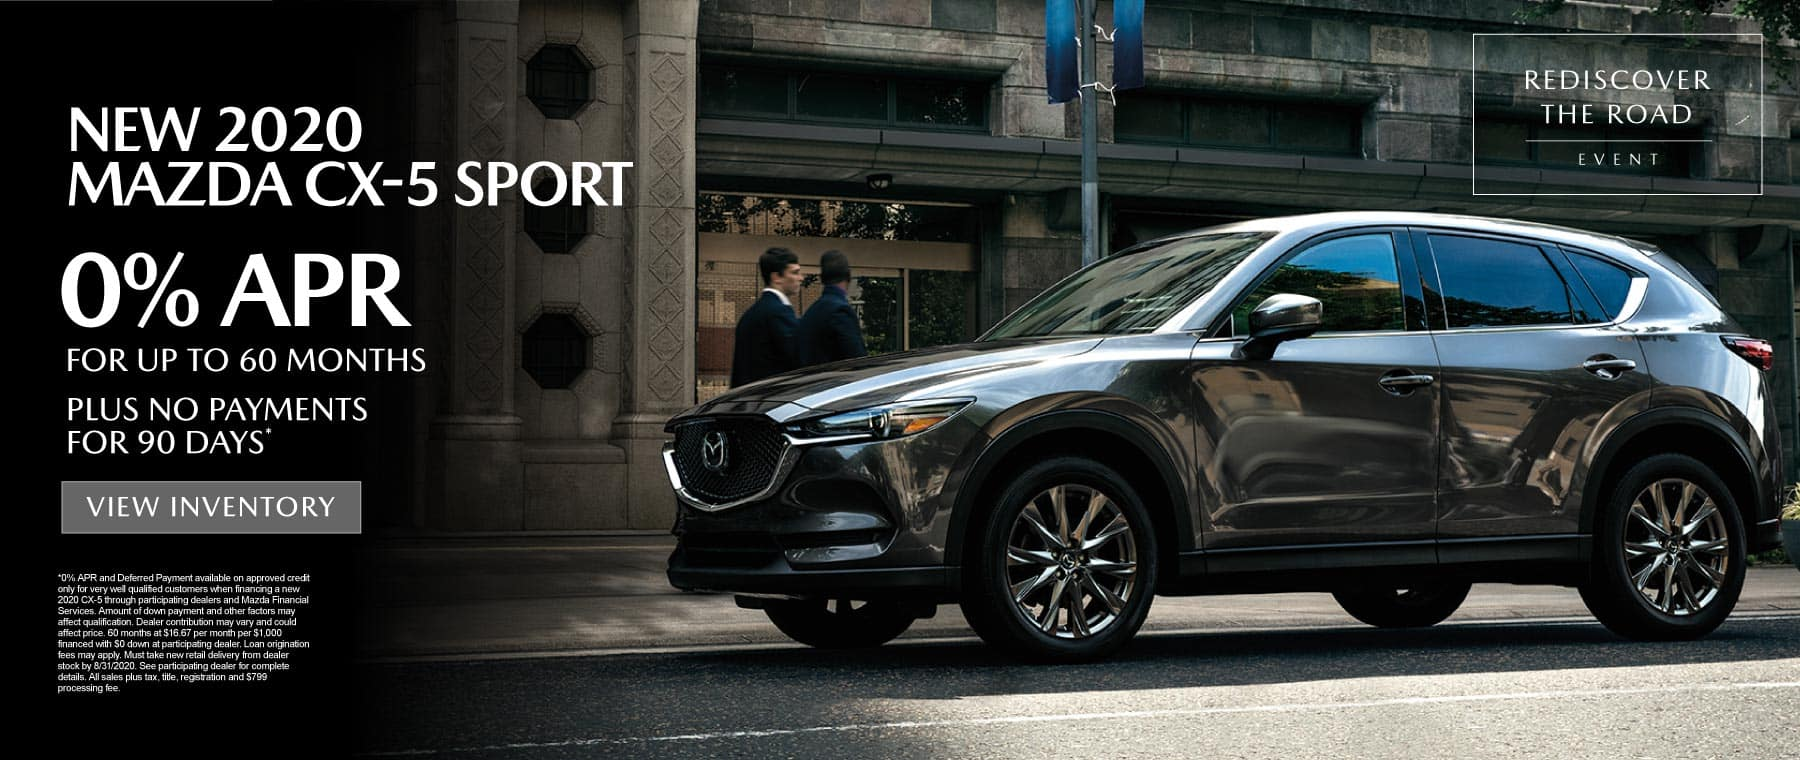 New 2020 Mazda CX-5 - 0% APR for up to 60 months* - Click to View Inventory